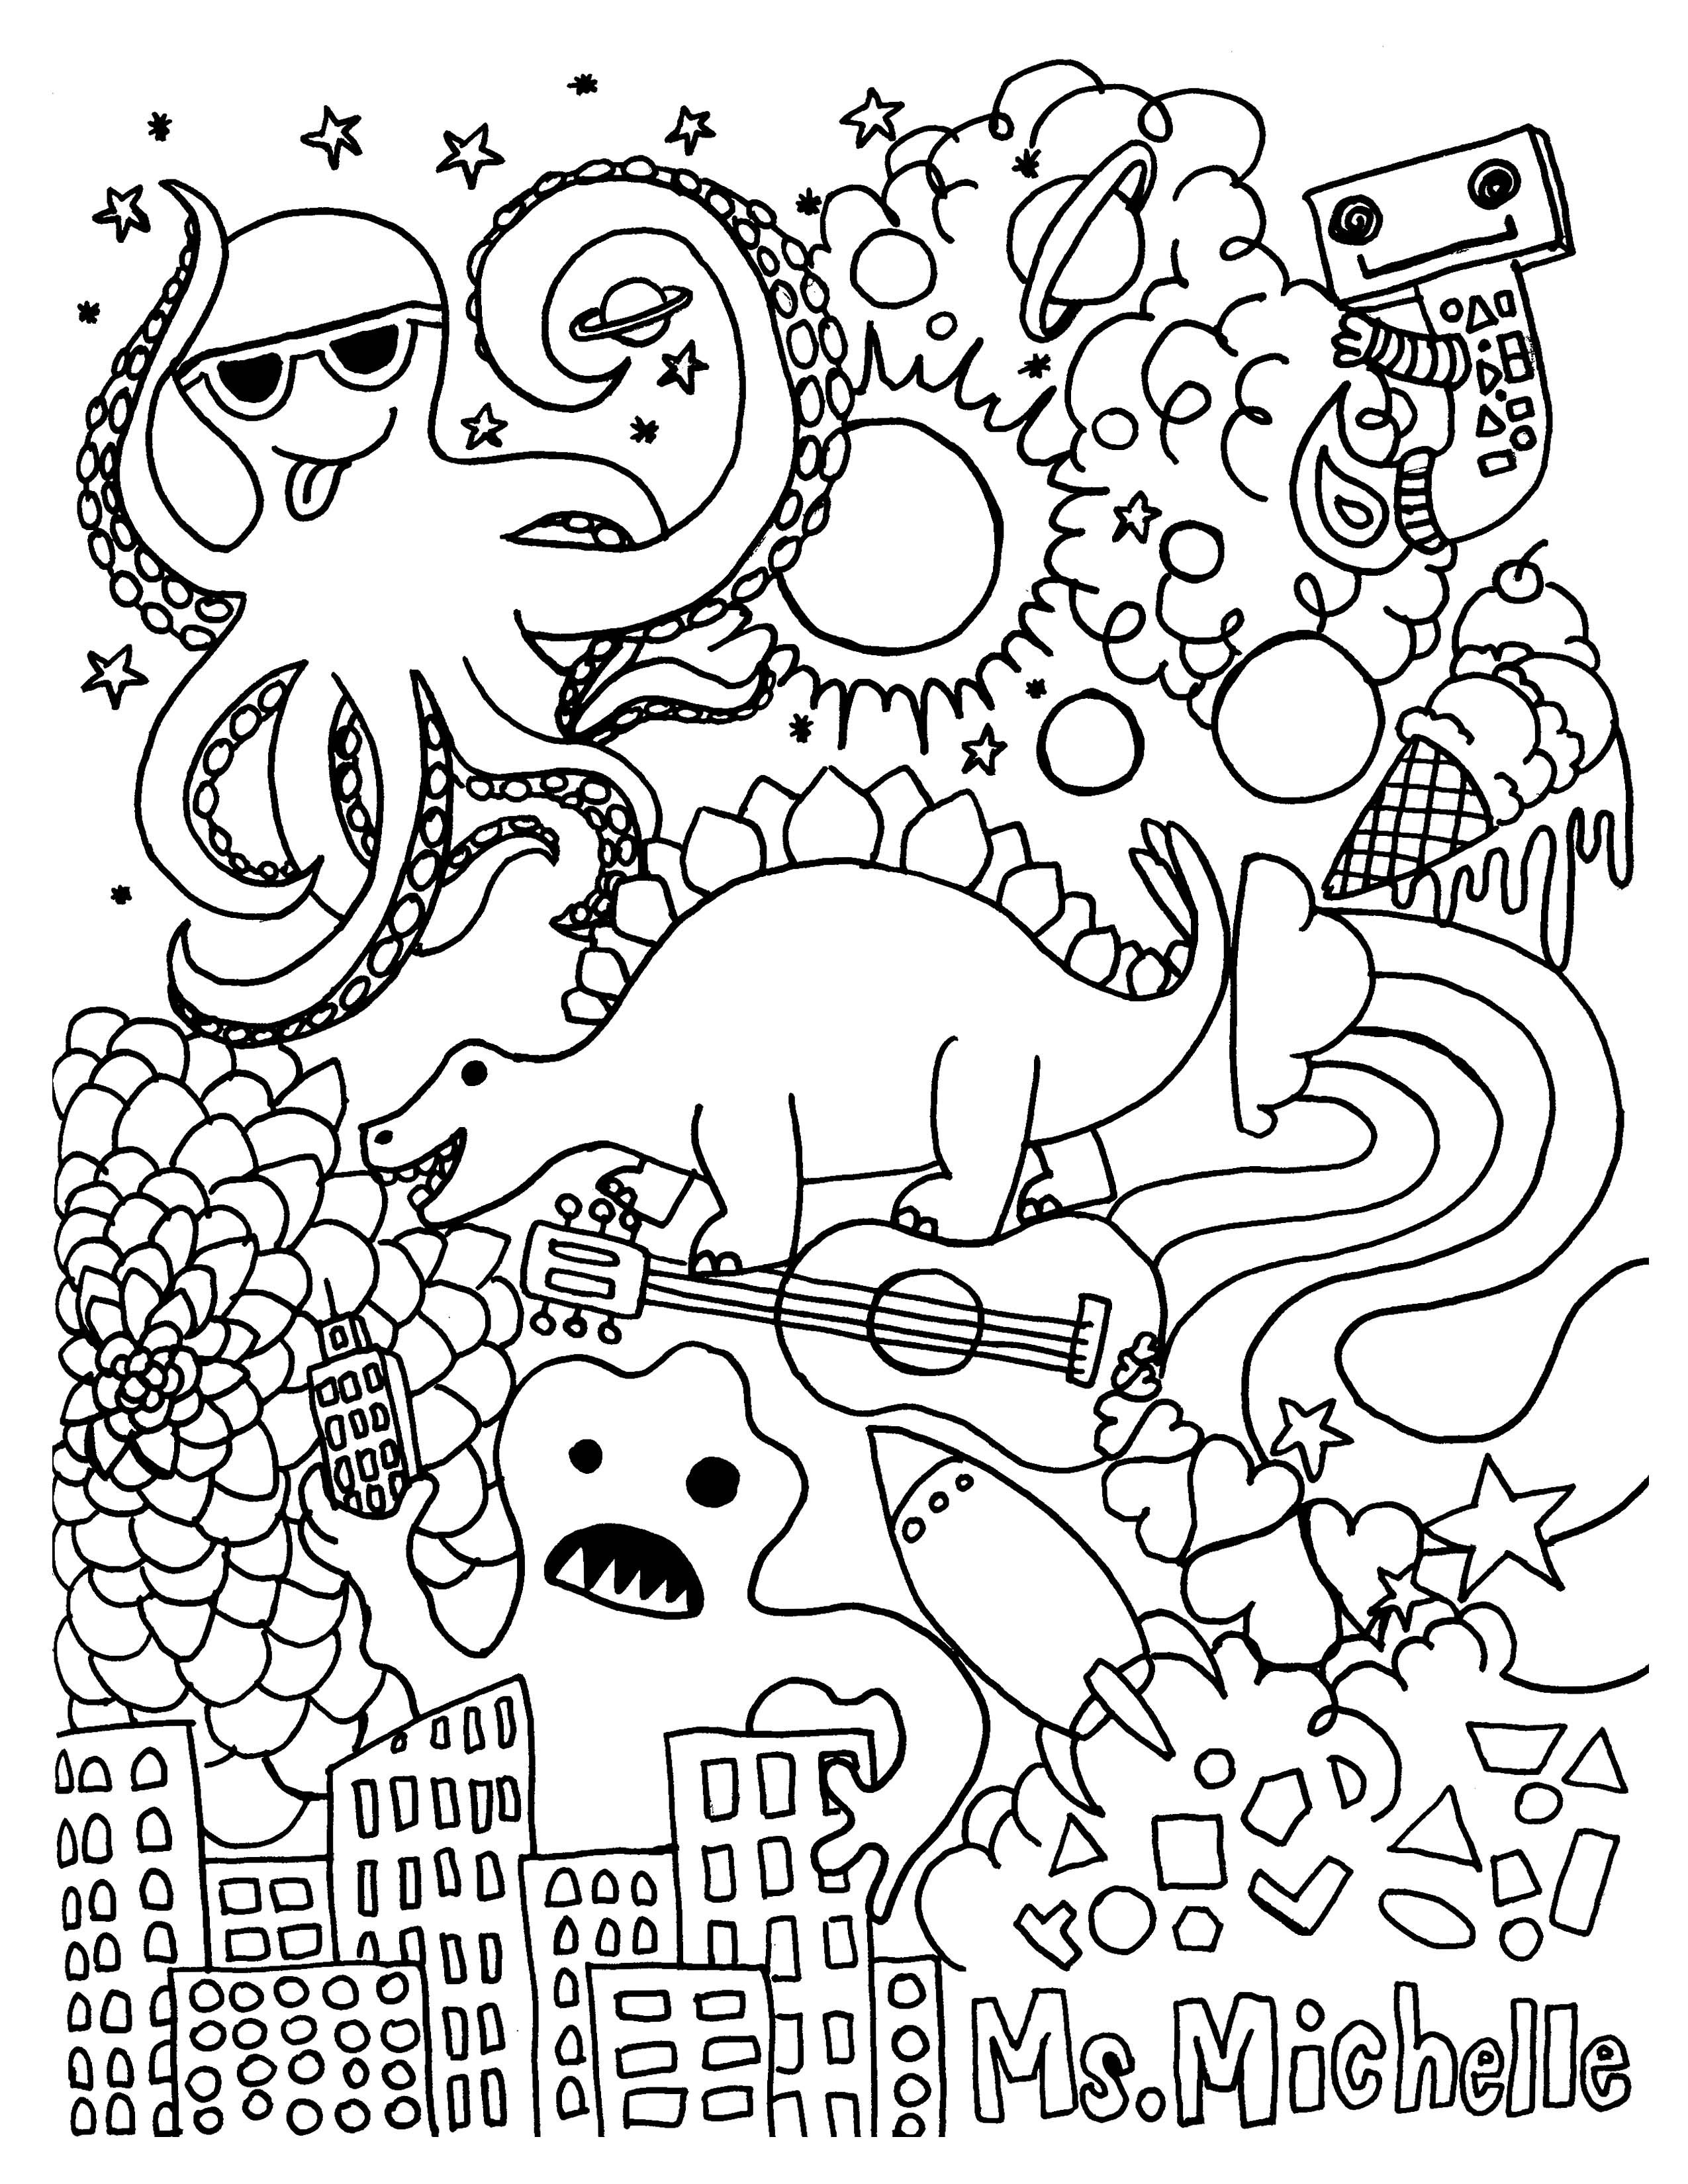 2550x3300 Awesome Love Graffiti Coloring Pages Free Coloring Pages Download